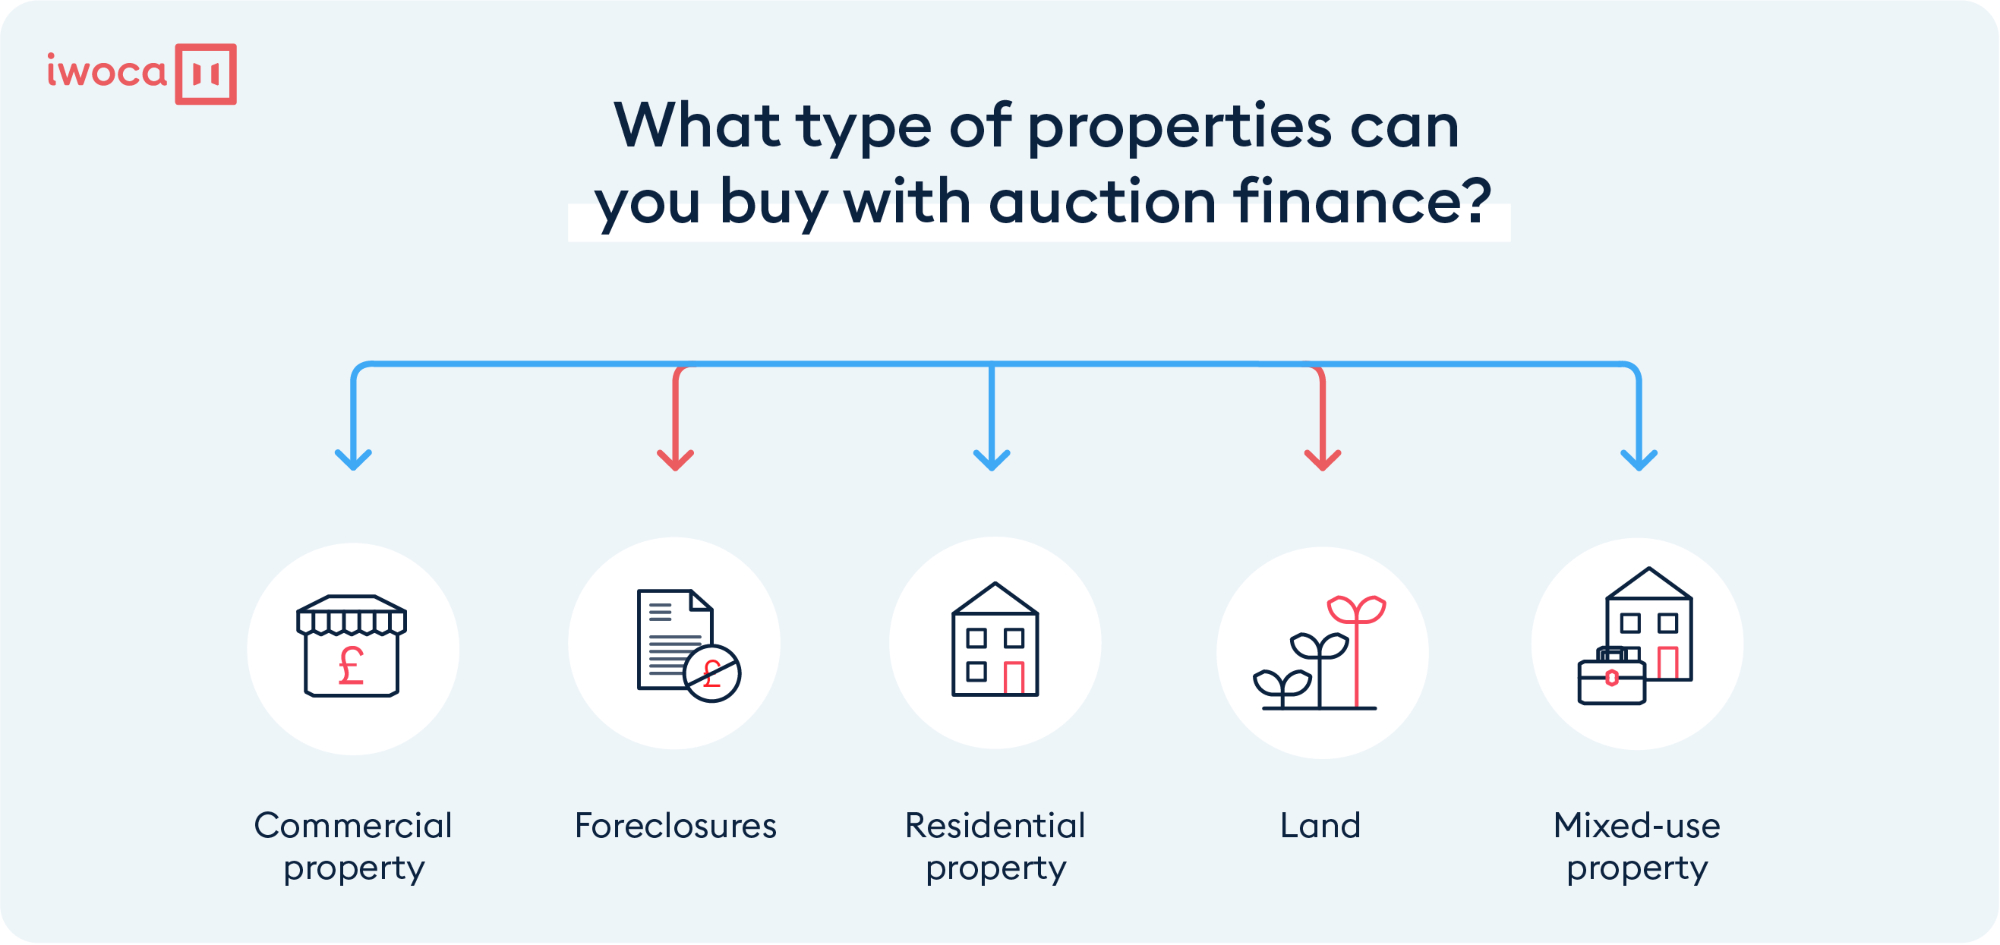 auction finance and the types of property you can buy